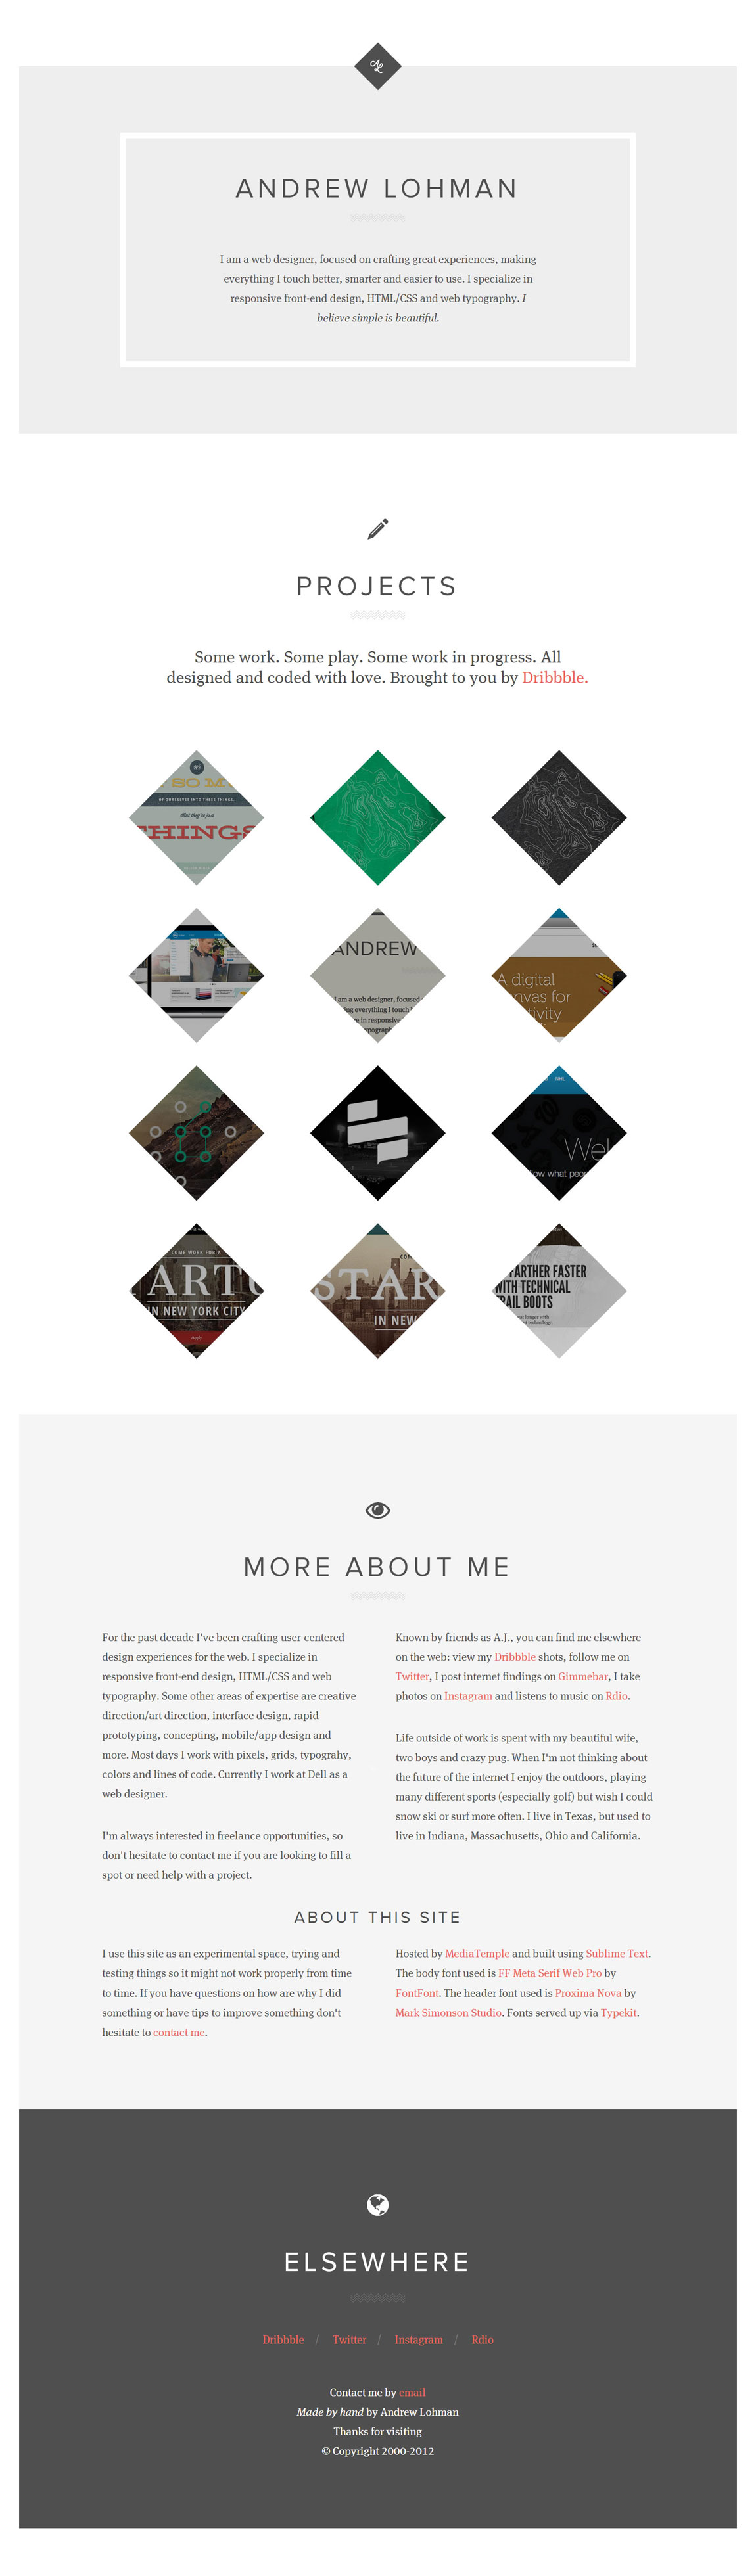 Andrew Lohman Website Screenshot